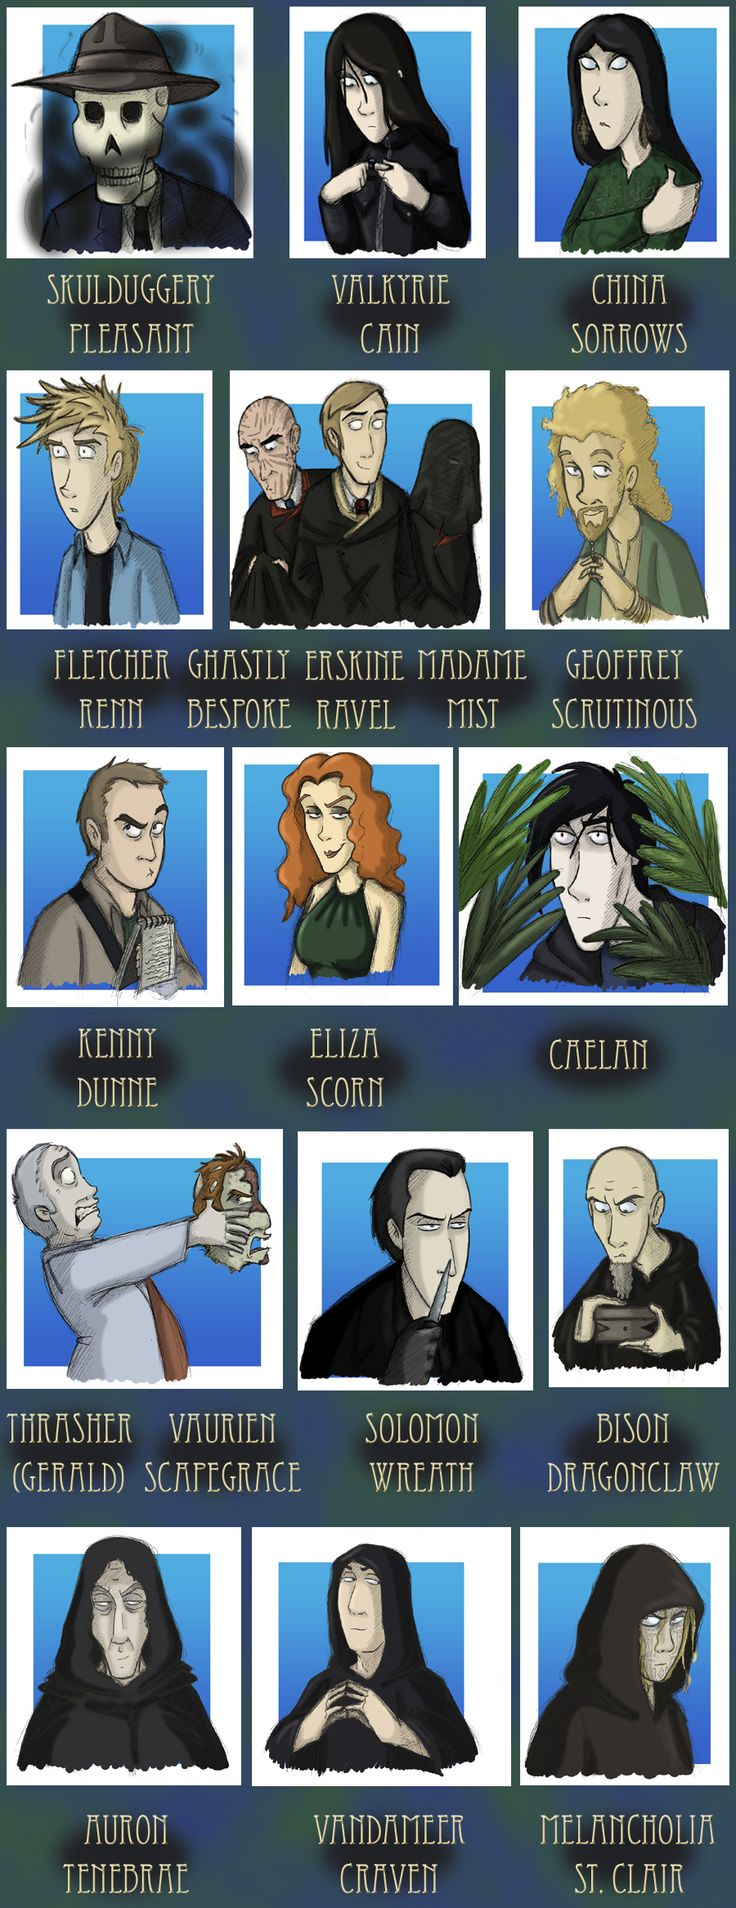 Skulduggery Pleasant book 6 cast of characters